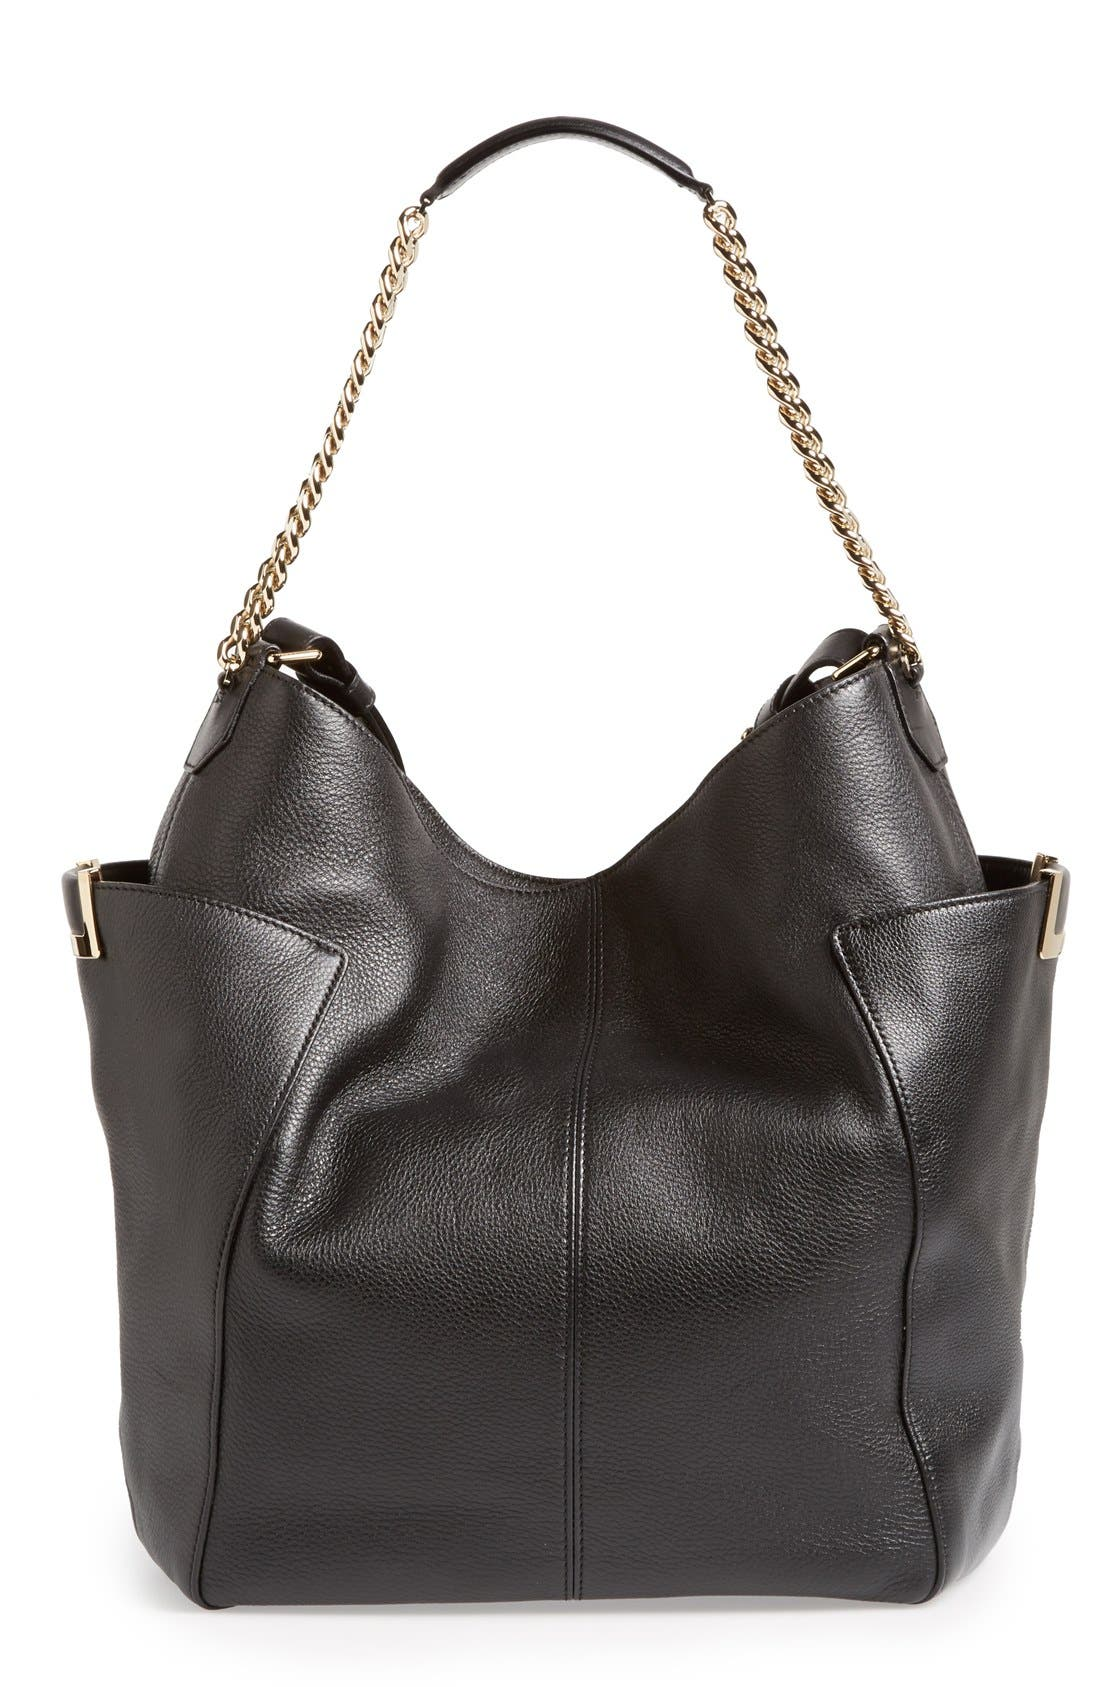 Main Image - Jimmy Choo 'Anna' Hobo